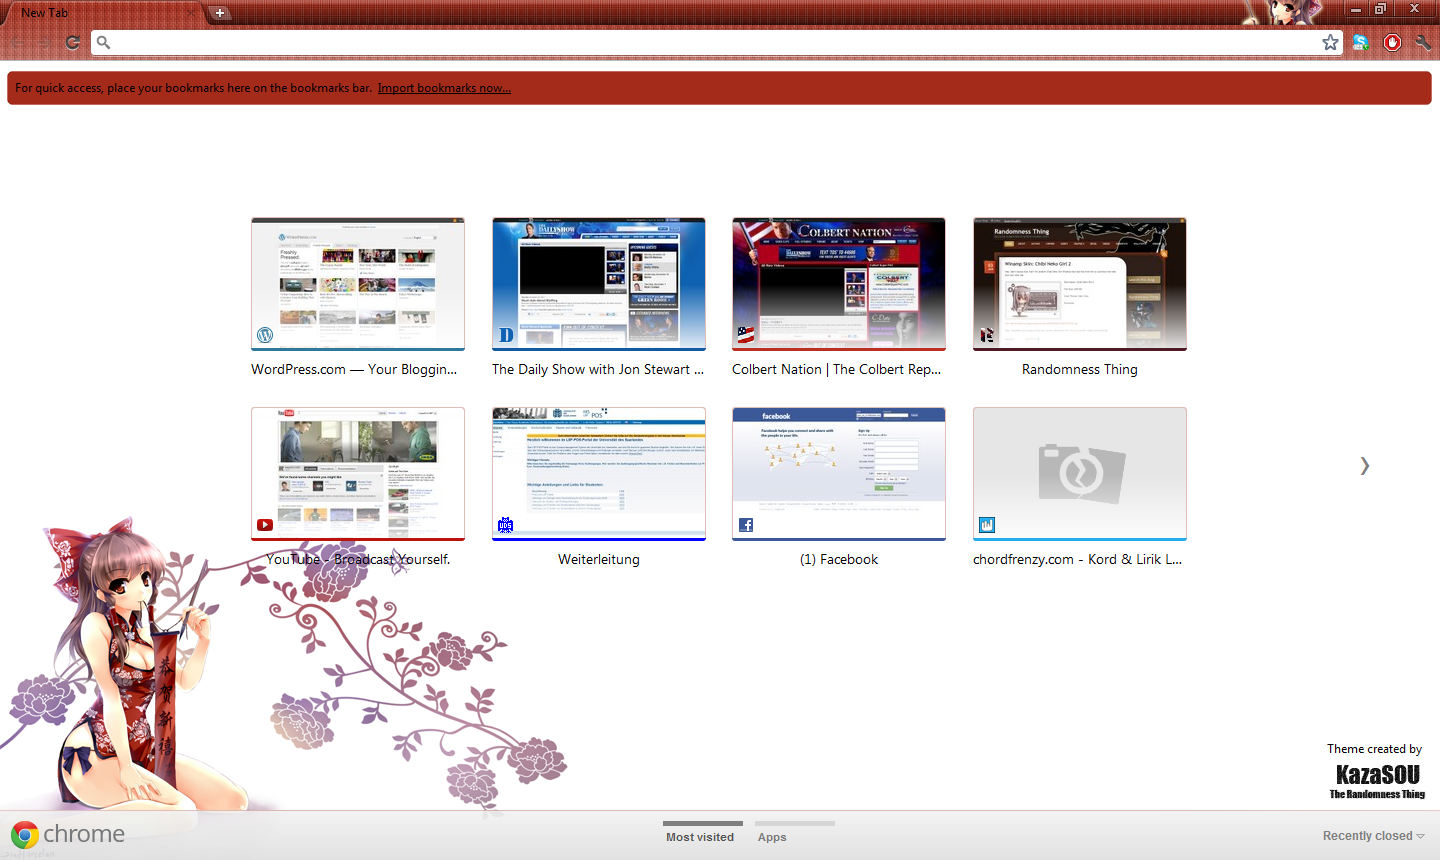 Google Chrome Theme: Hakurei Reimu | Randomness Thing